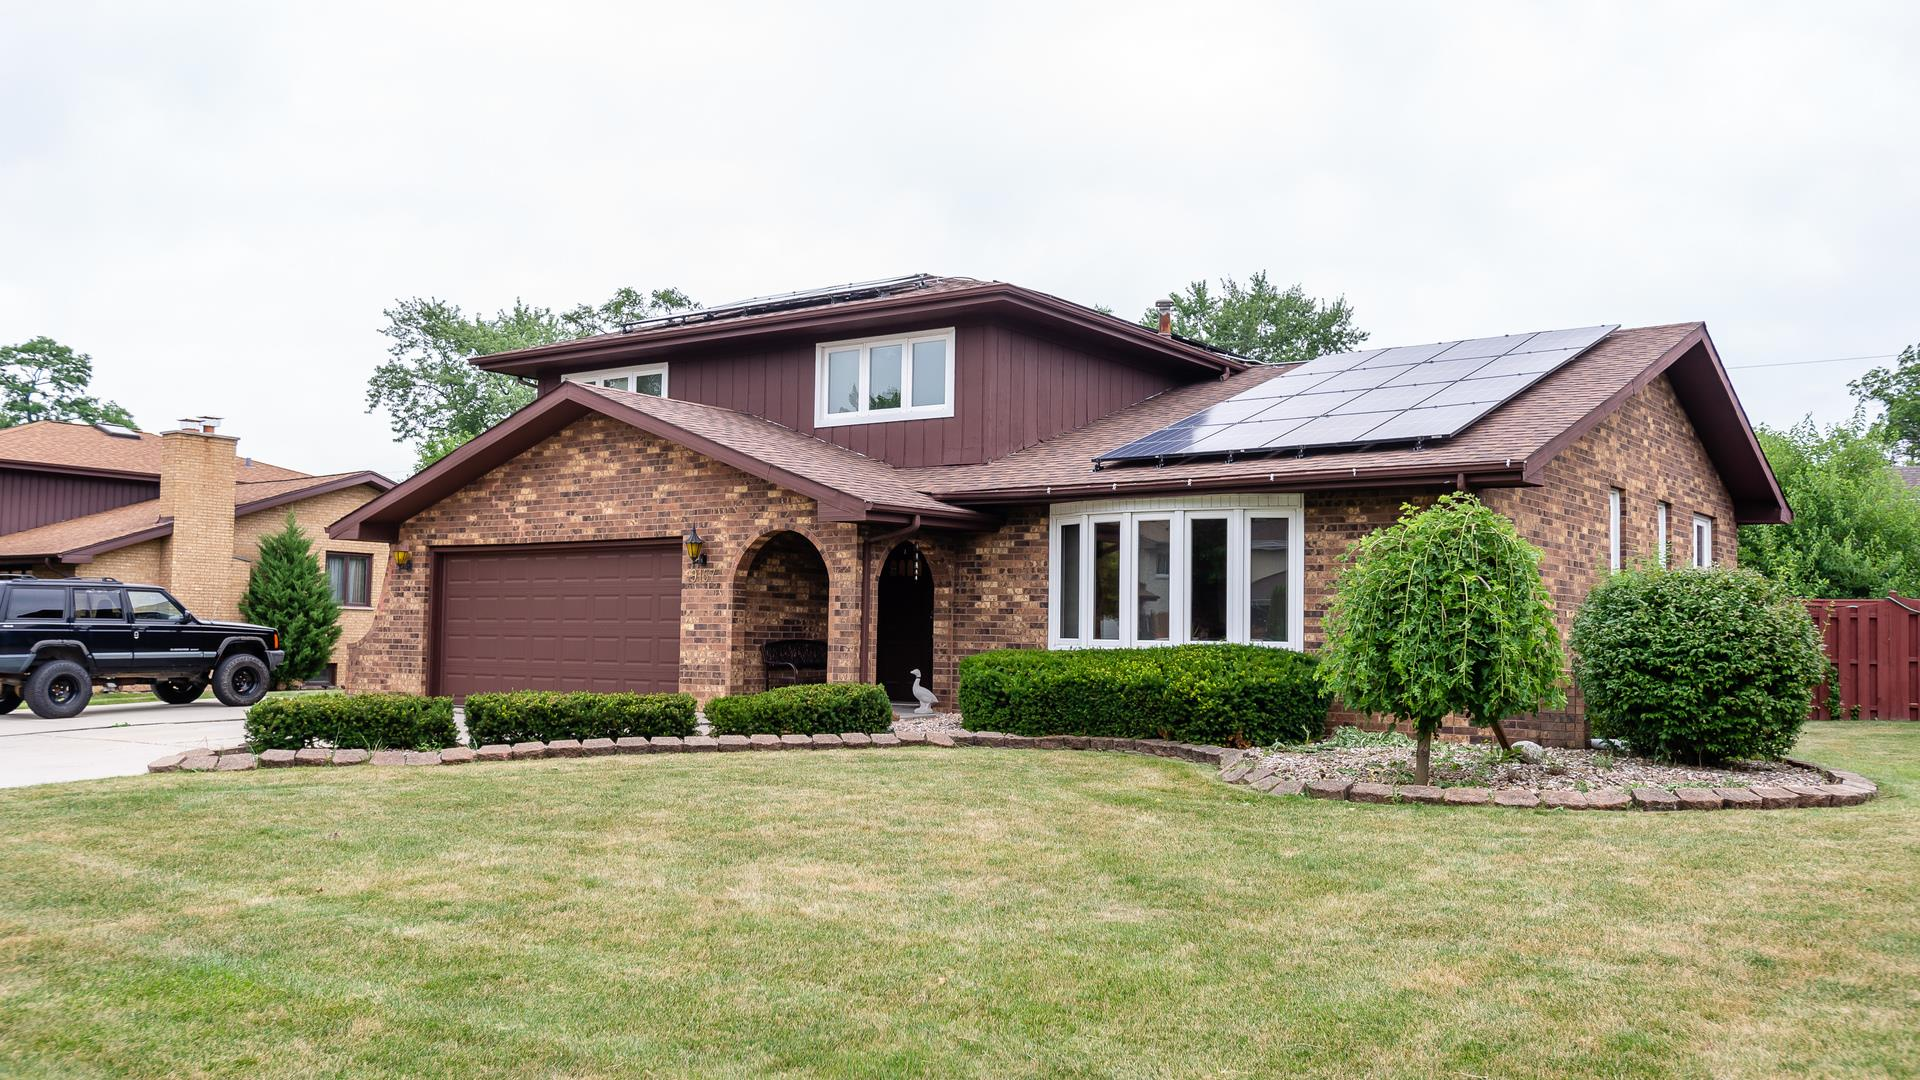 9157 S 83rd Court, Hickory Hills, IL 60457 - #: 10787386